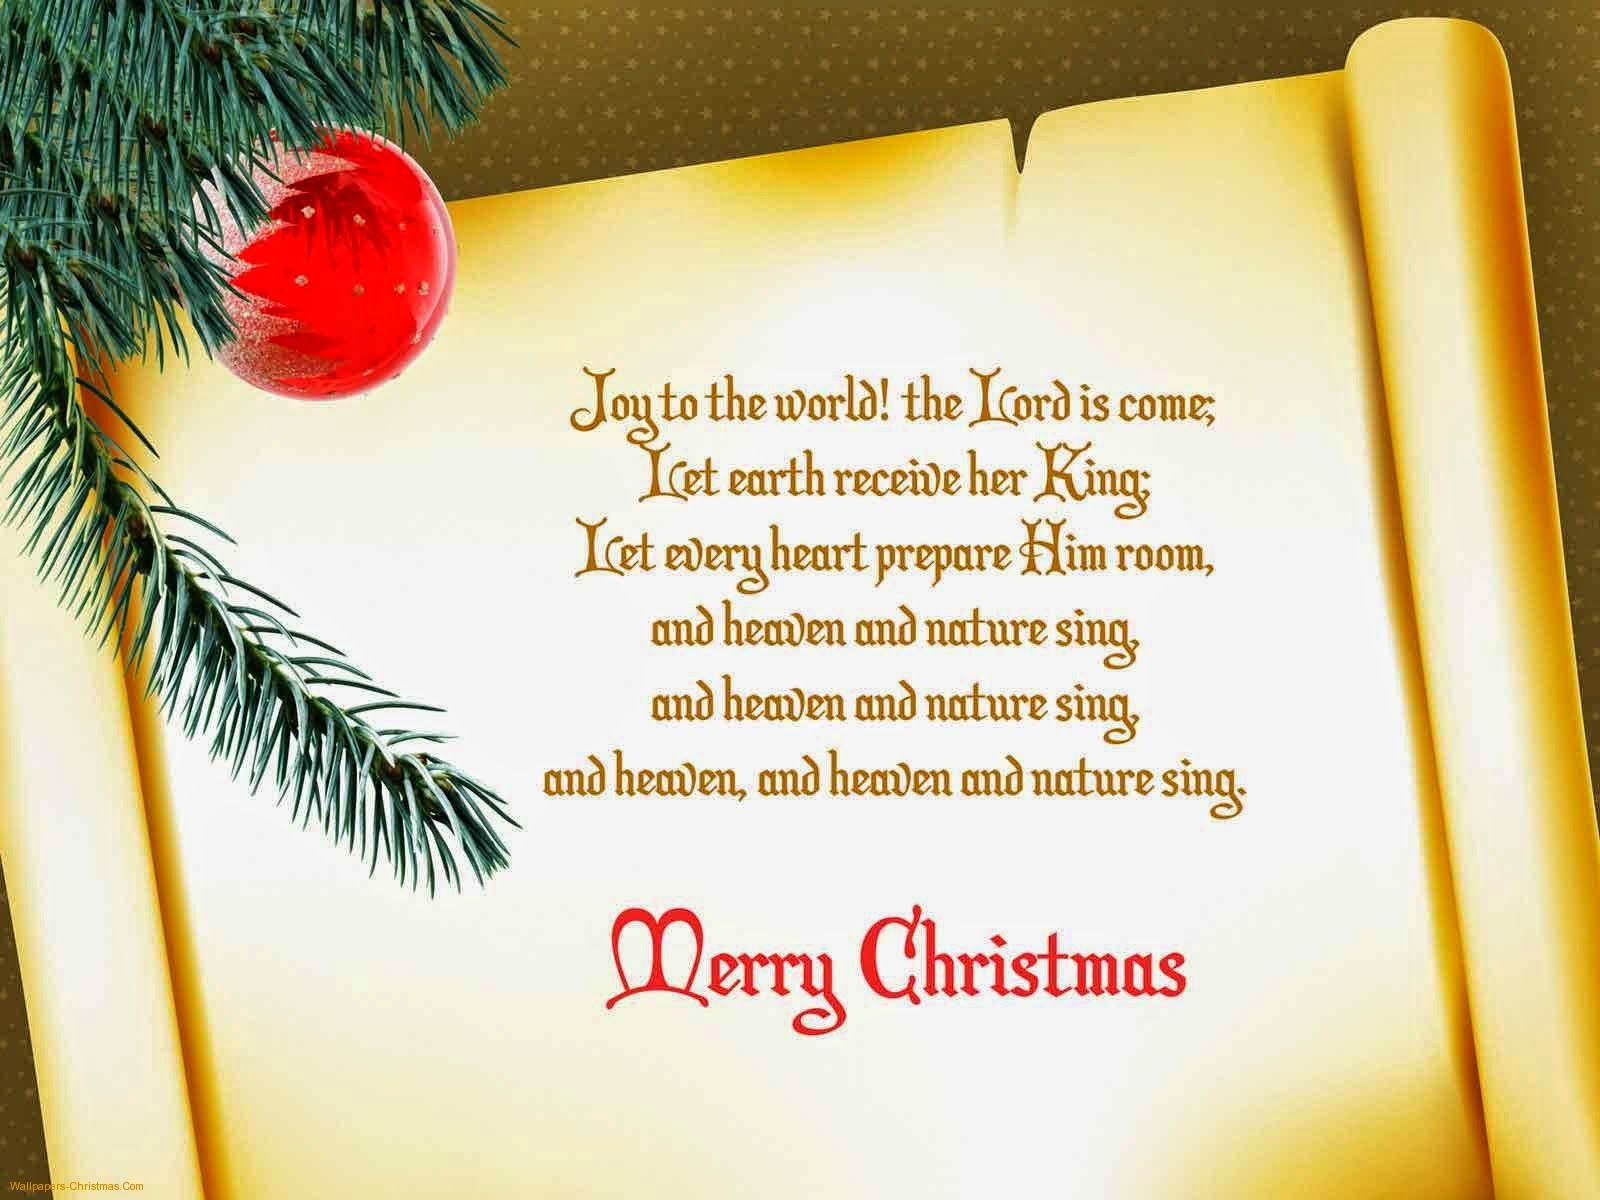 Christmas Wishes 2014 Christmas Wishes 2014 For Happiness And